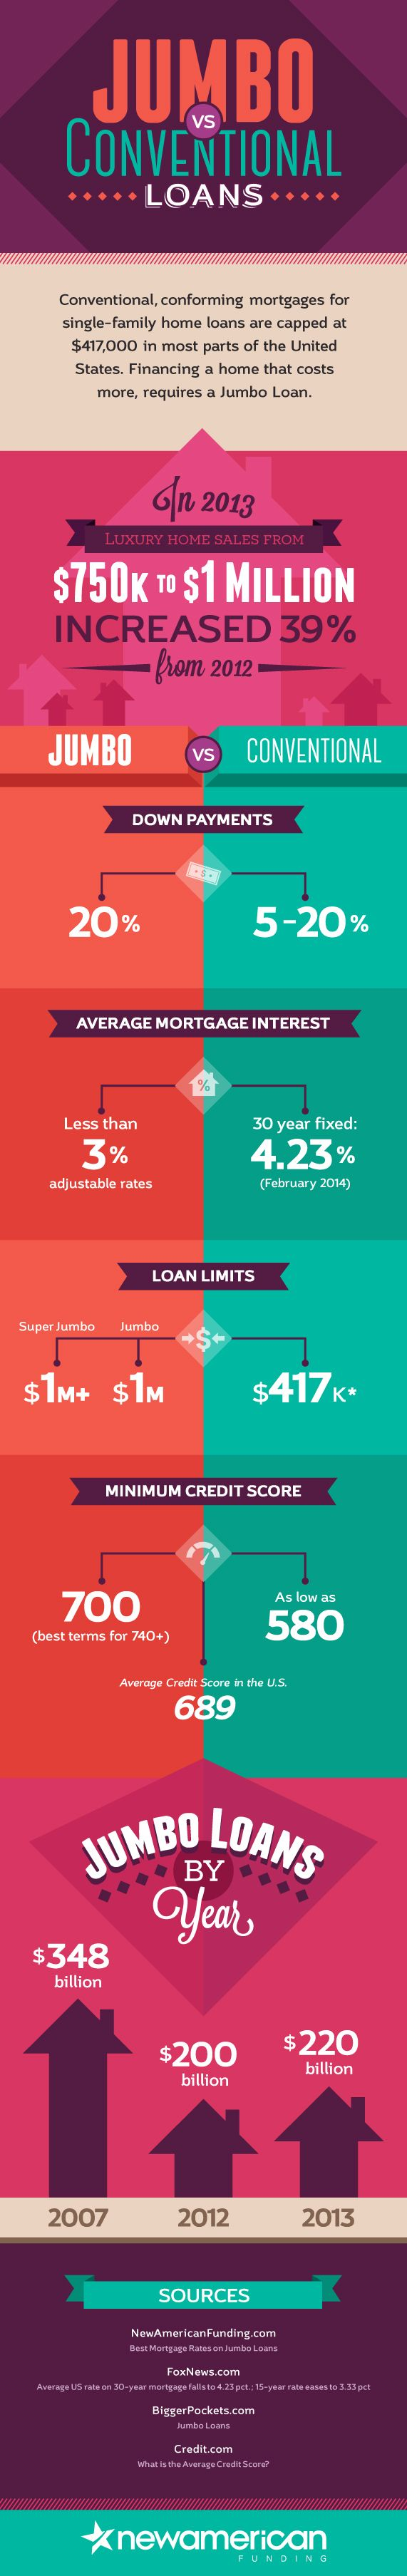 17 Best images about Mortgage Infographics on Pinterest ...